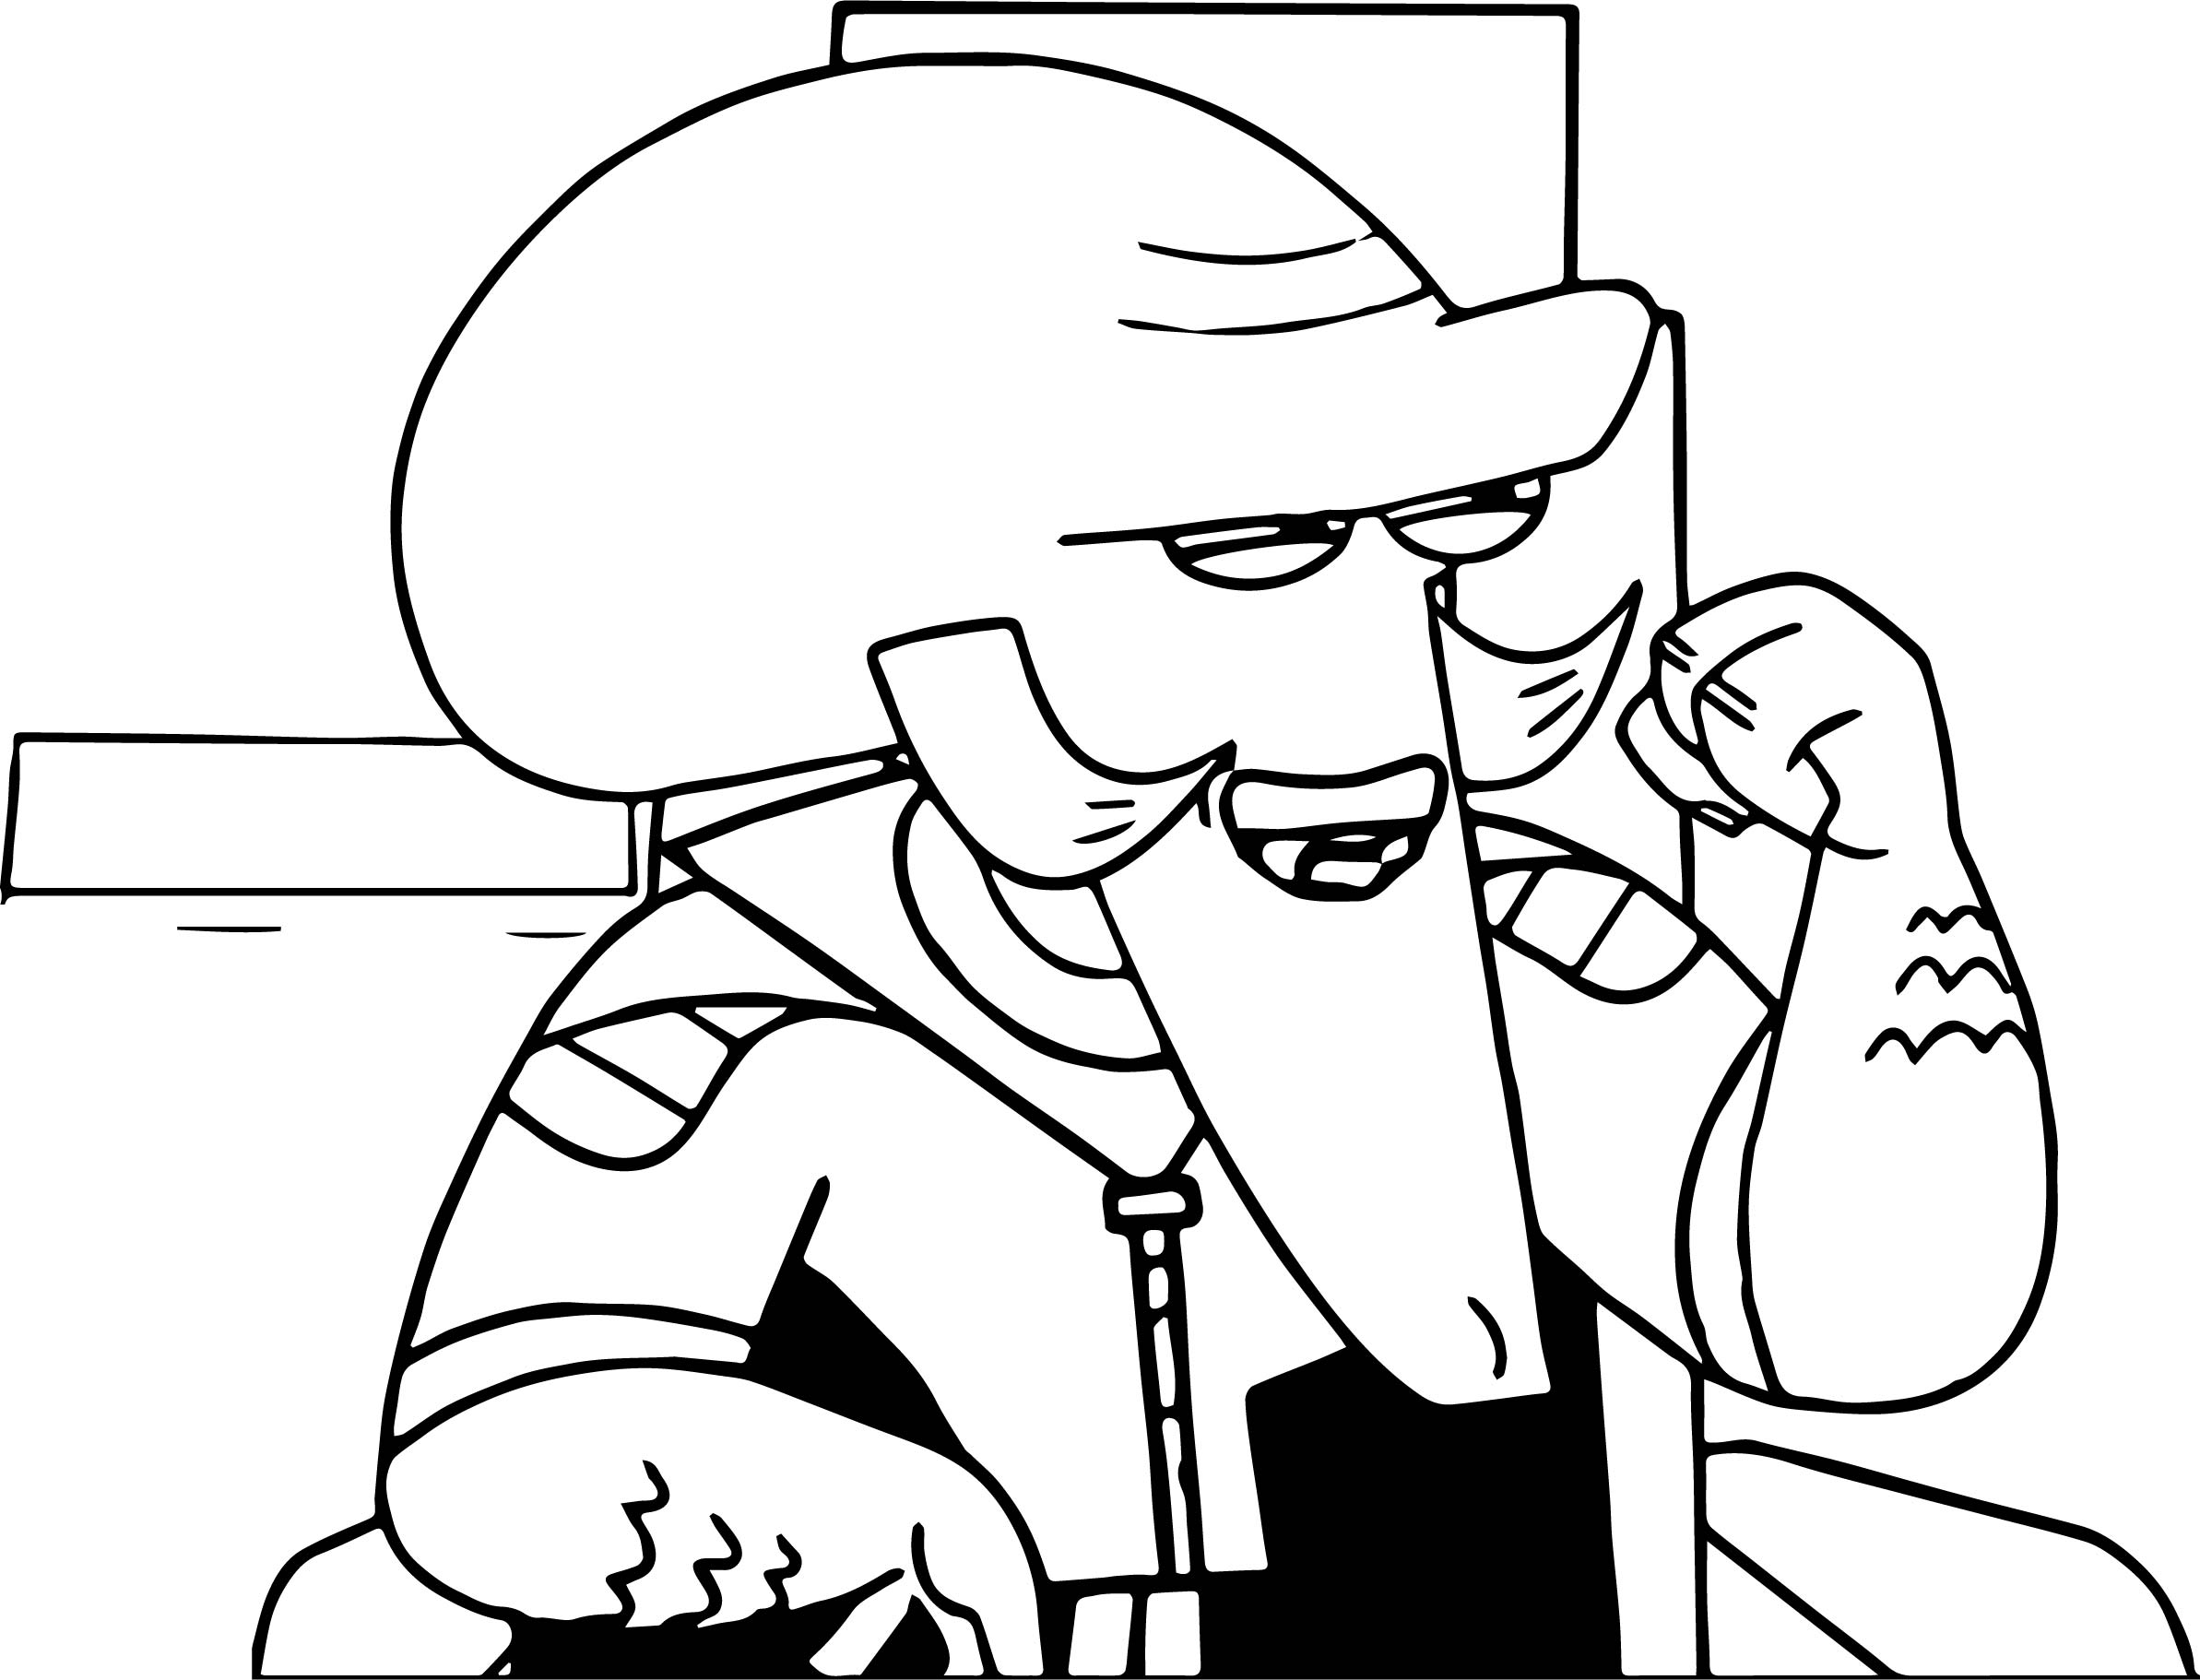 Count Venamus Coloring Page